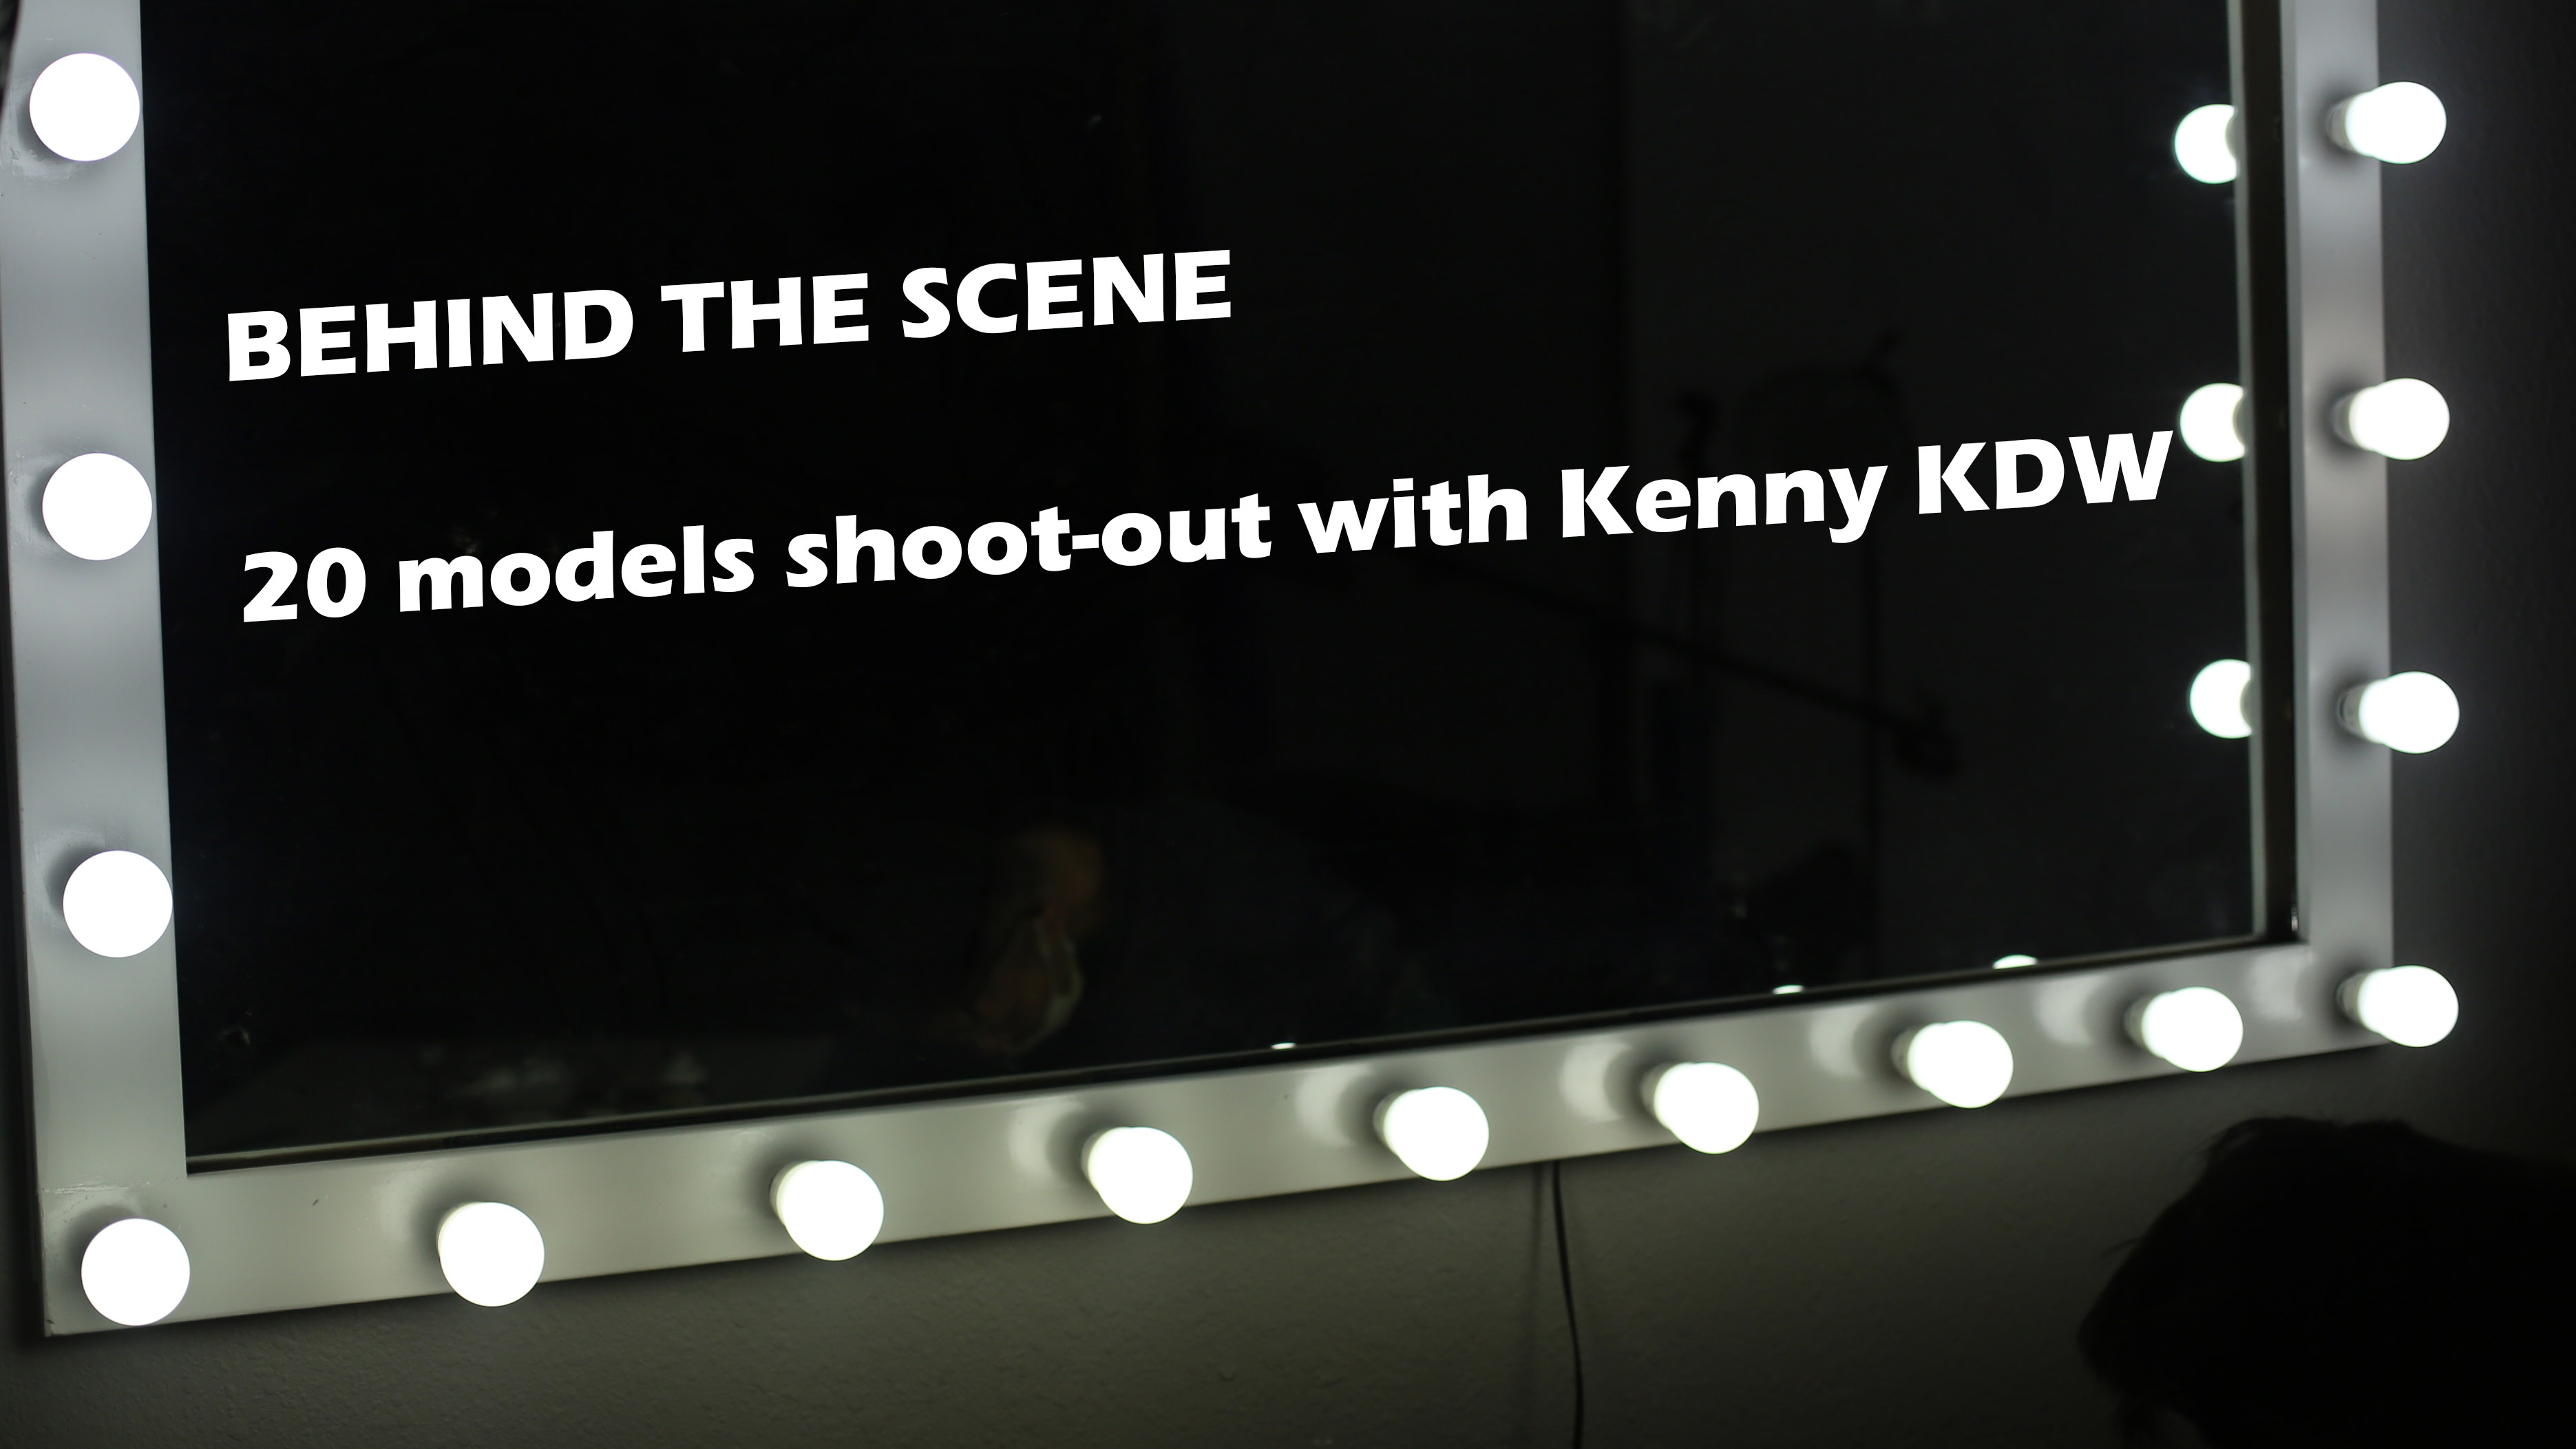 20+ models shoot out with Kenny KDW